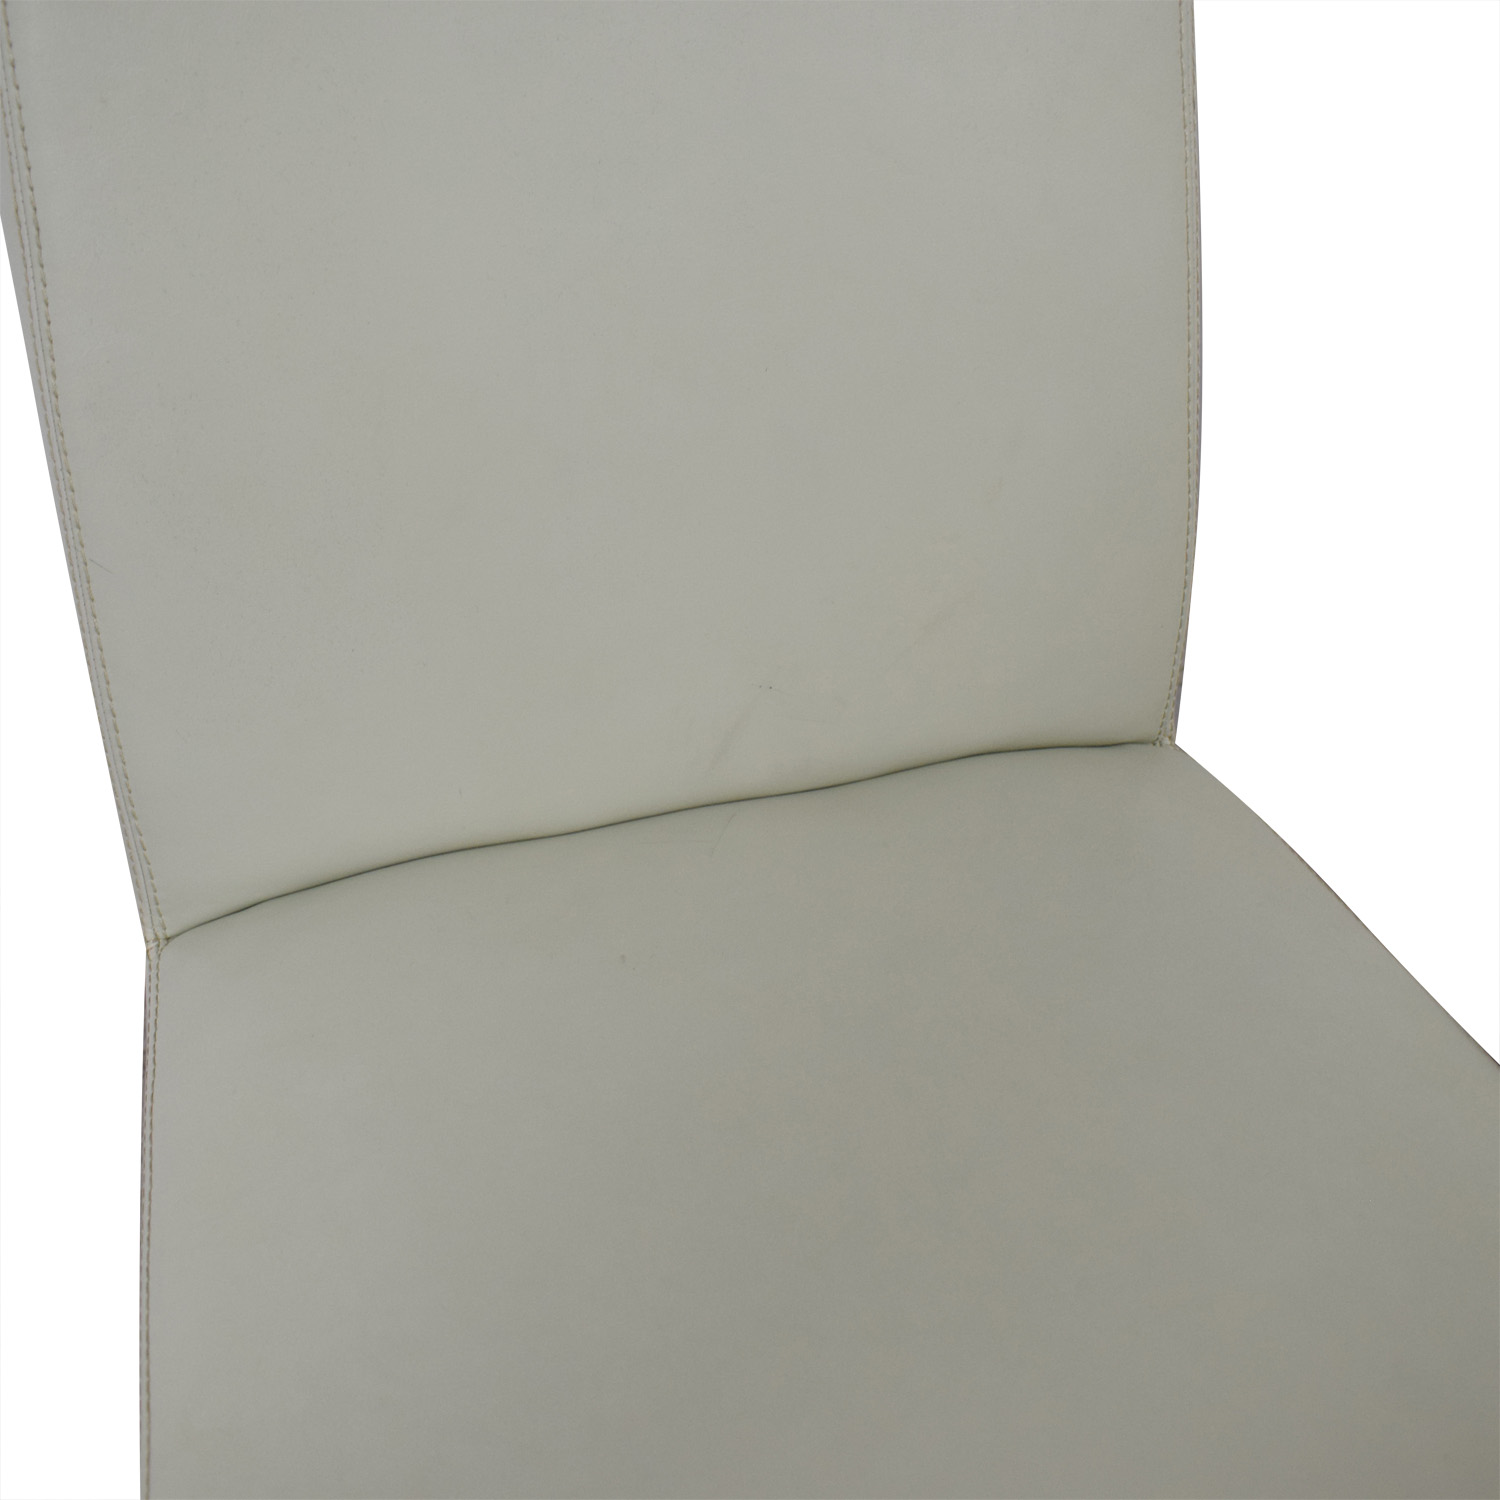 Crate & Barrel White Leather Dining Chairs sale